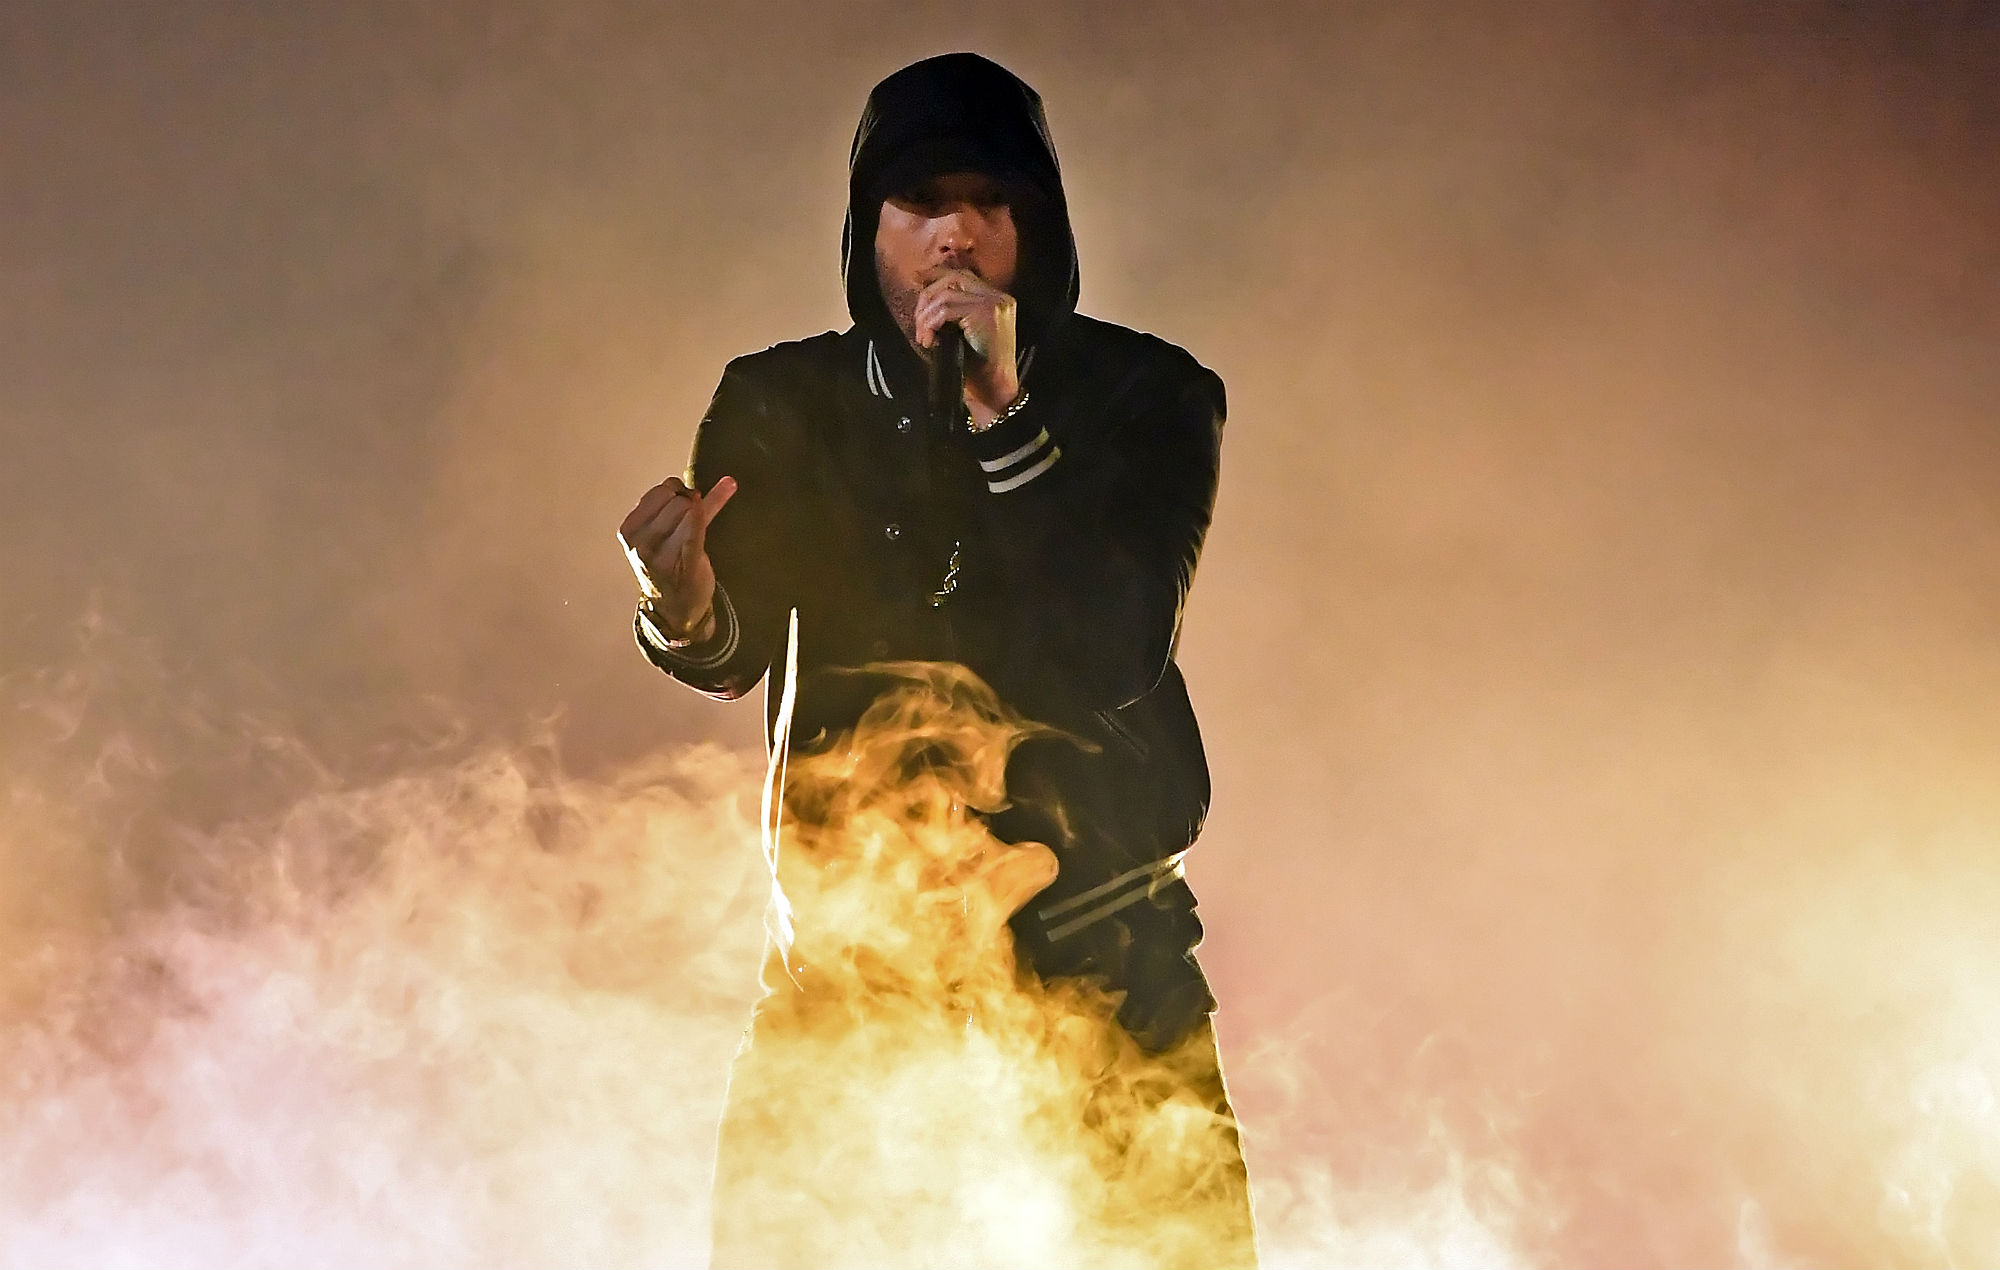 Eminem has now broken two records in 2018 with 'Kamikaze